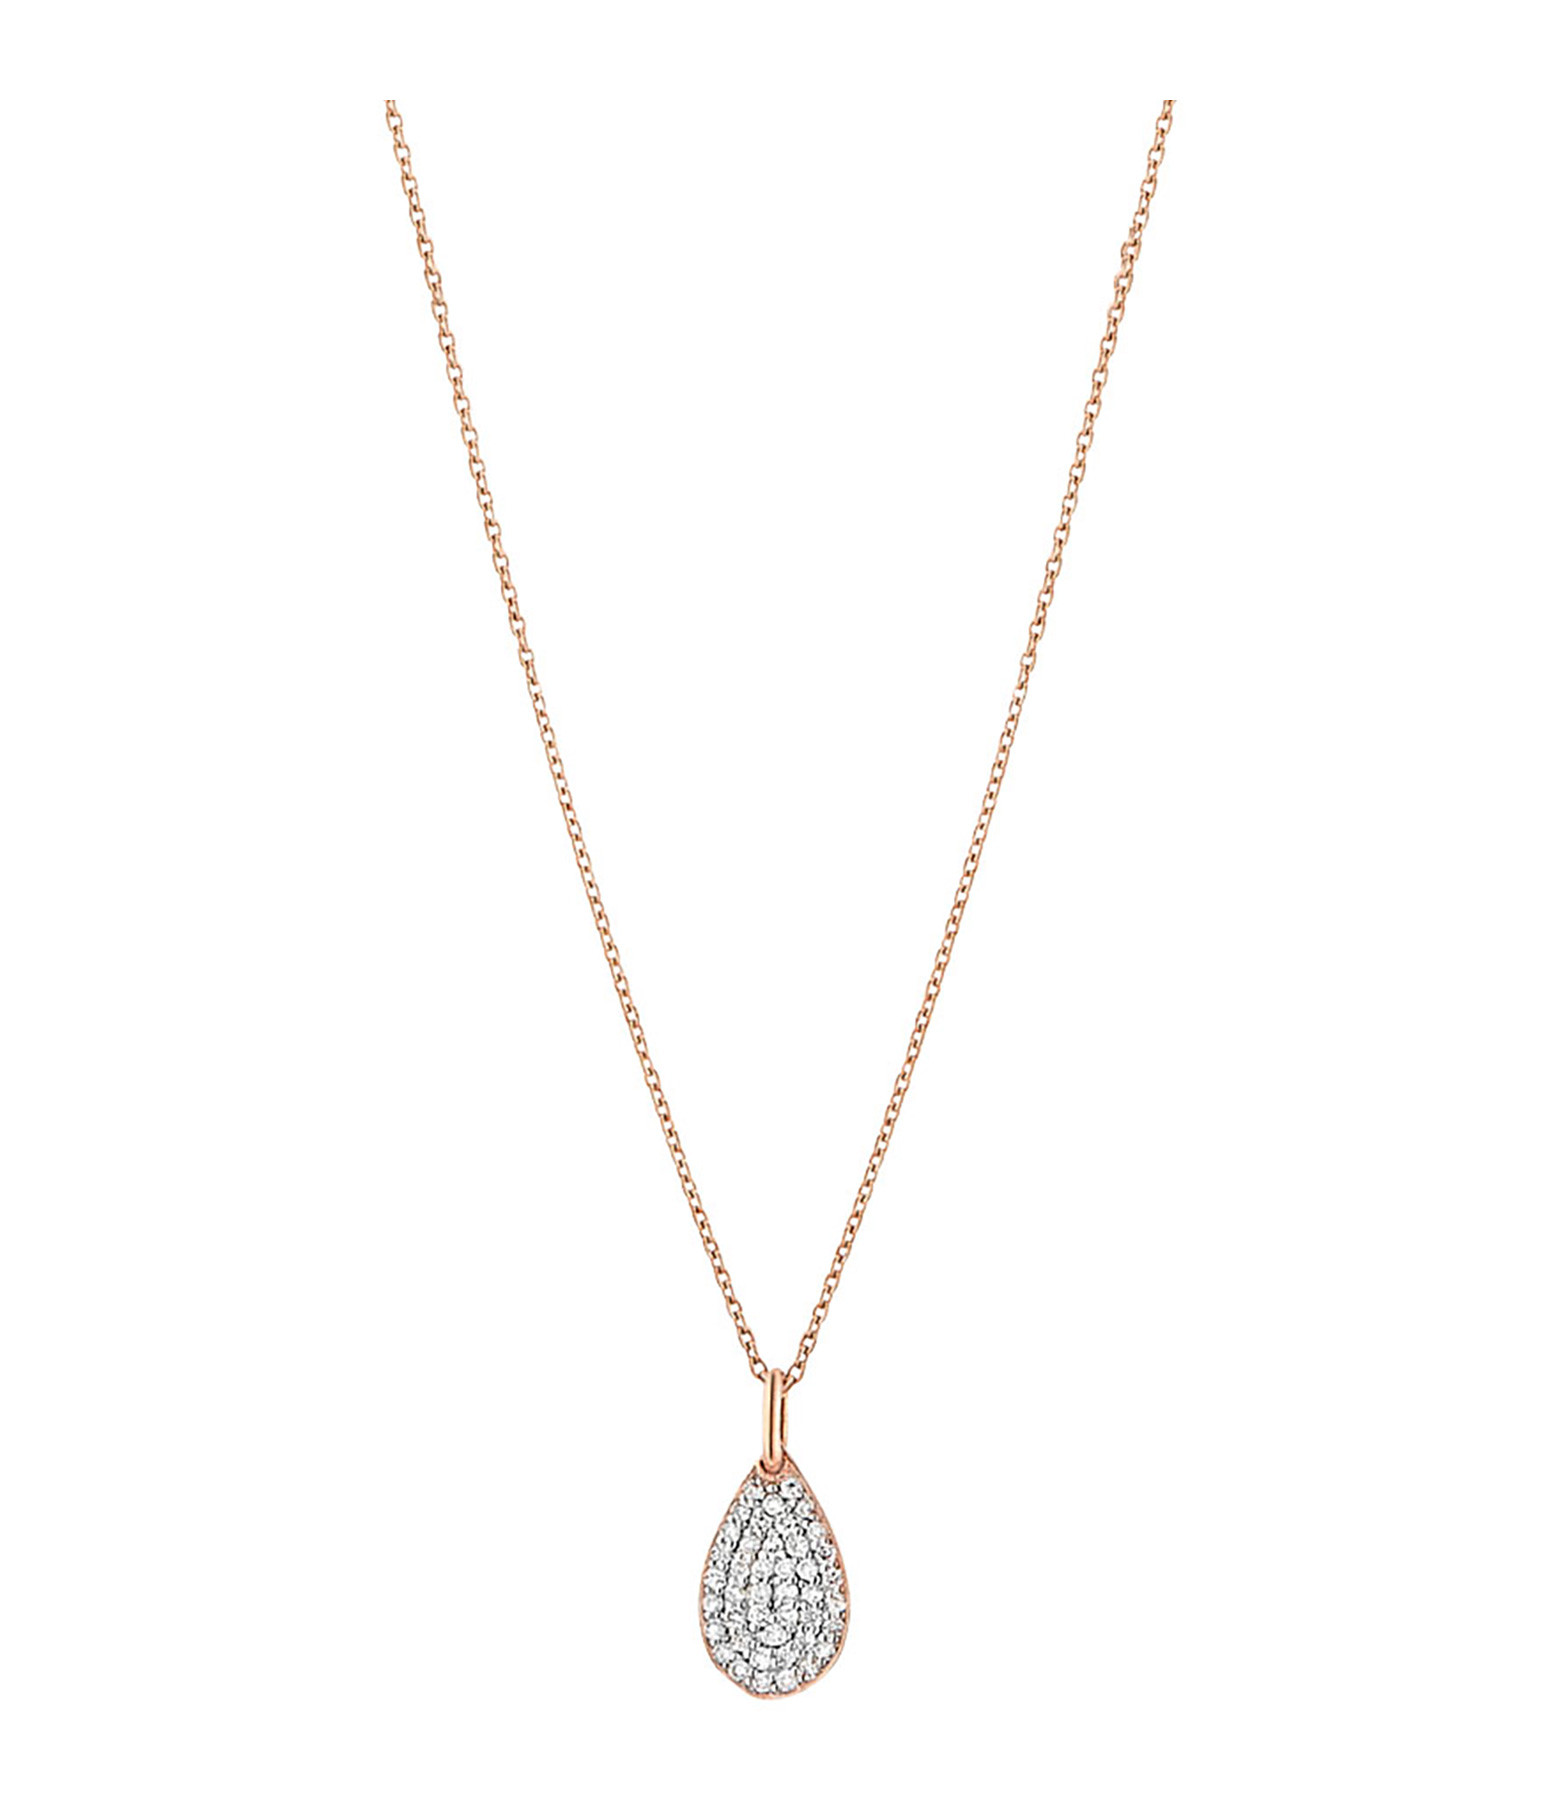 GINETTE NY - Collier Bliss Diamants Or Rose